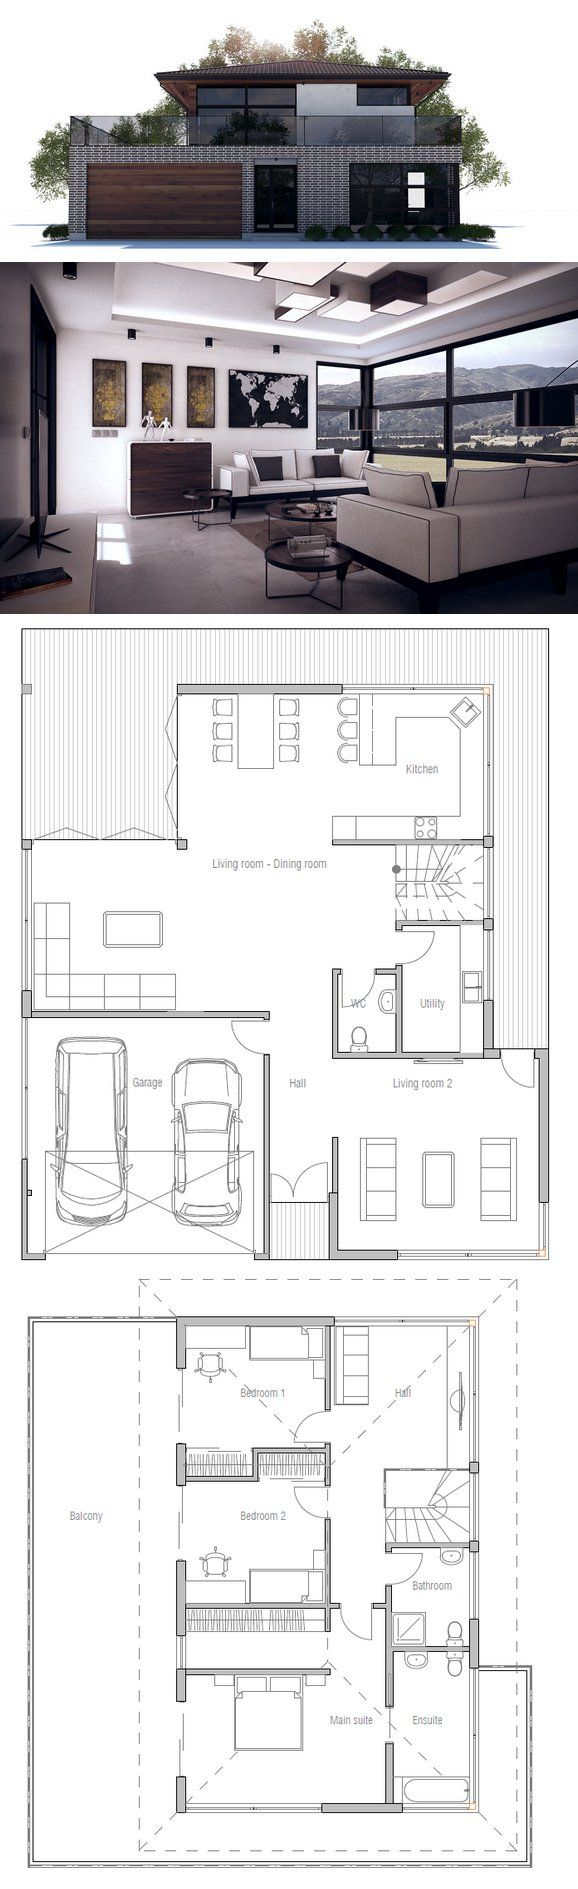 Architecture House Floor Plans best 25+ architectural floor plans ideas on pinterest | house